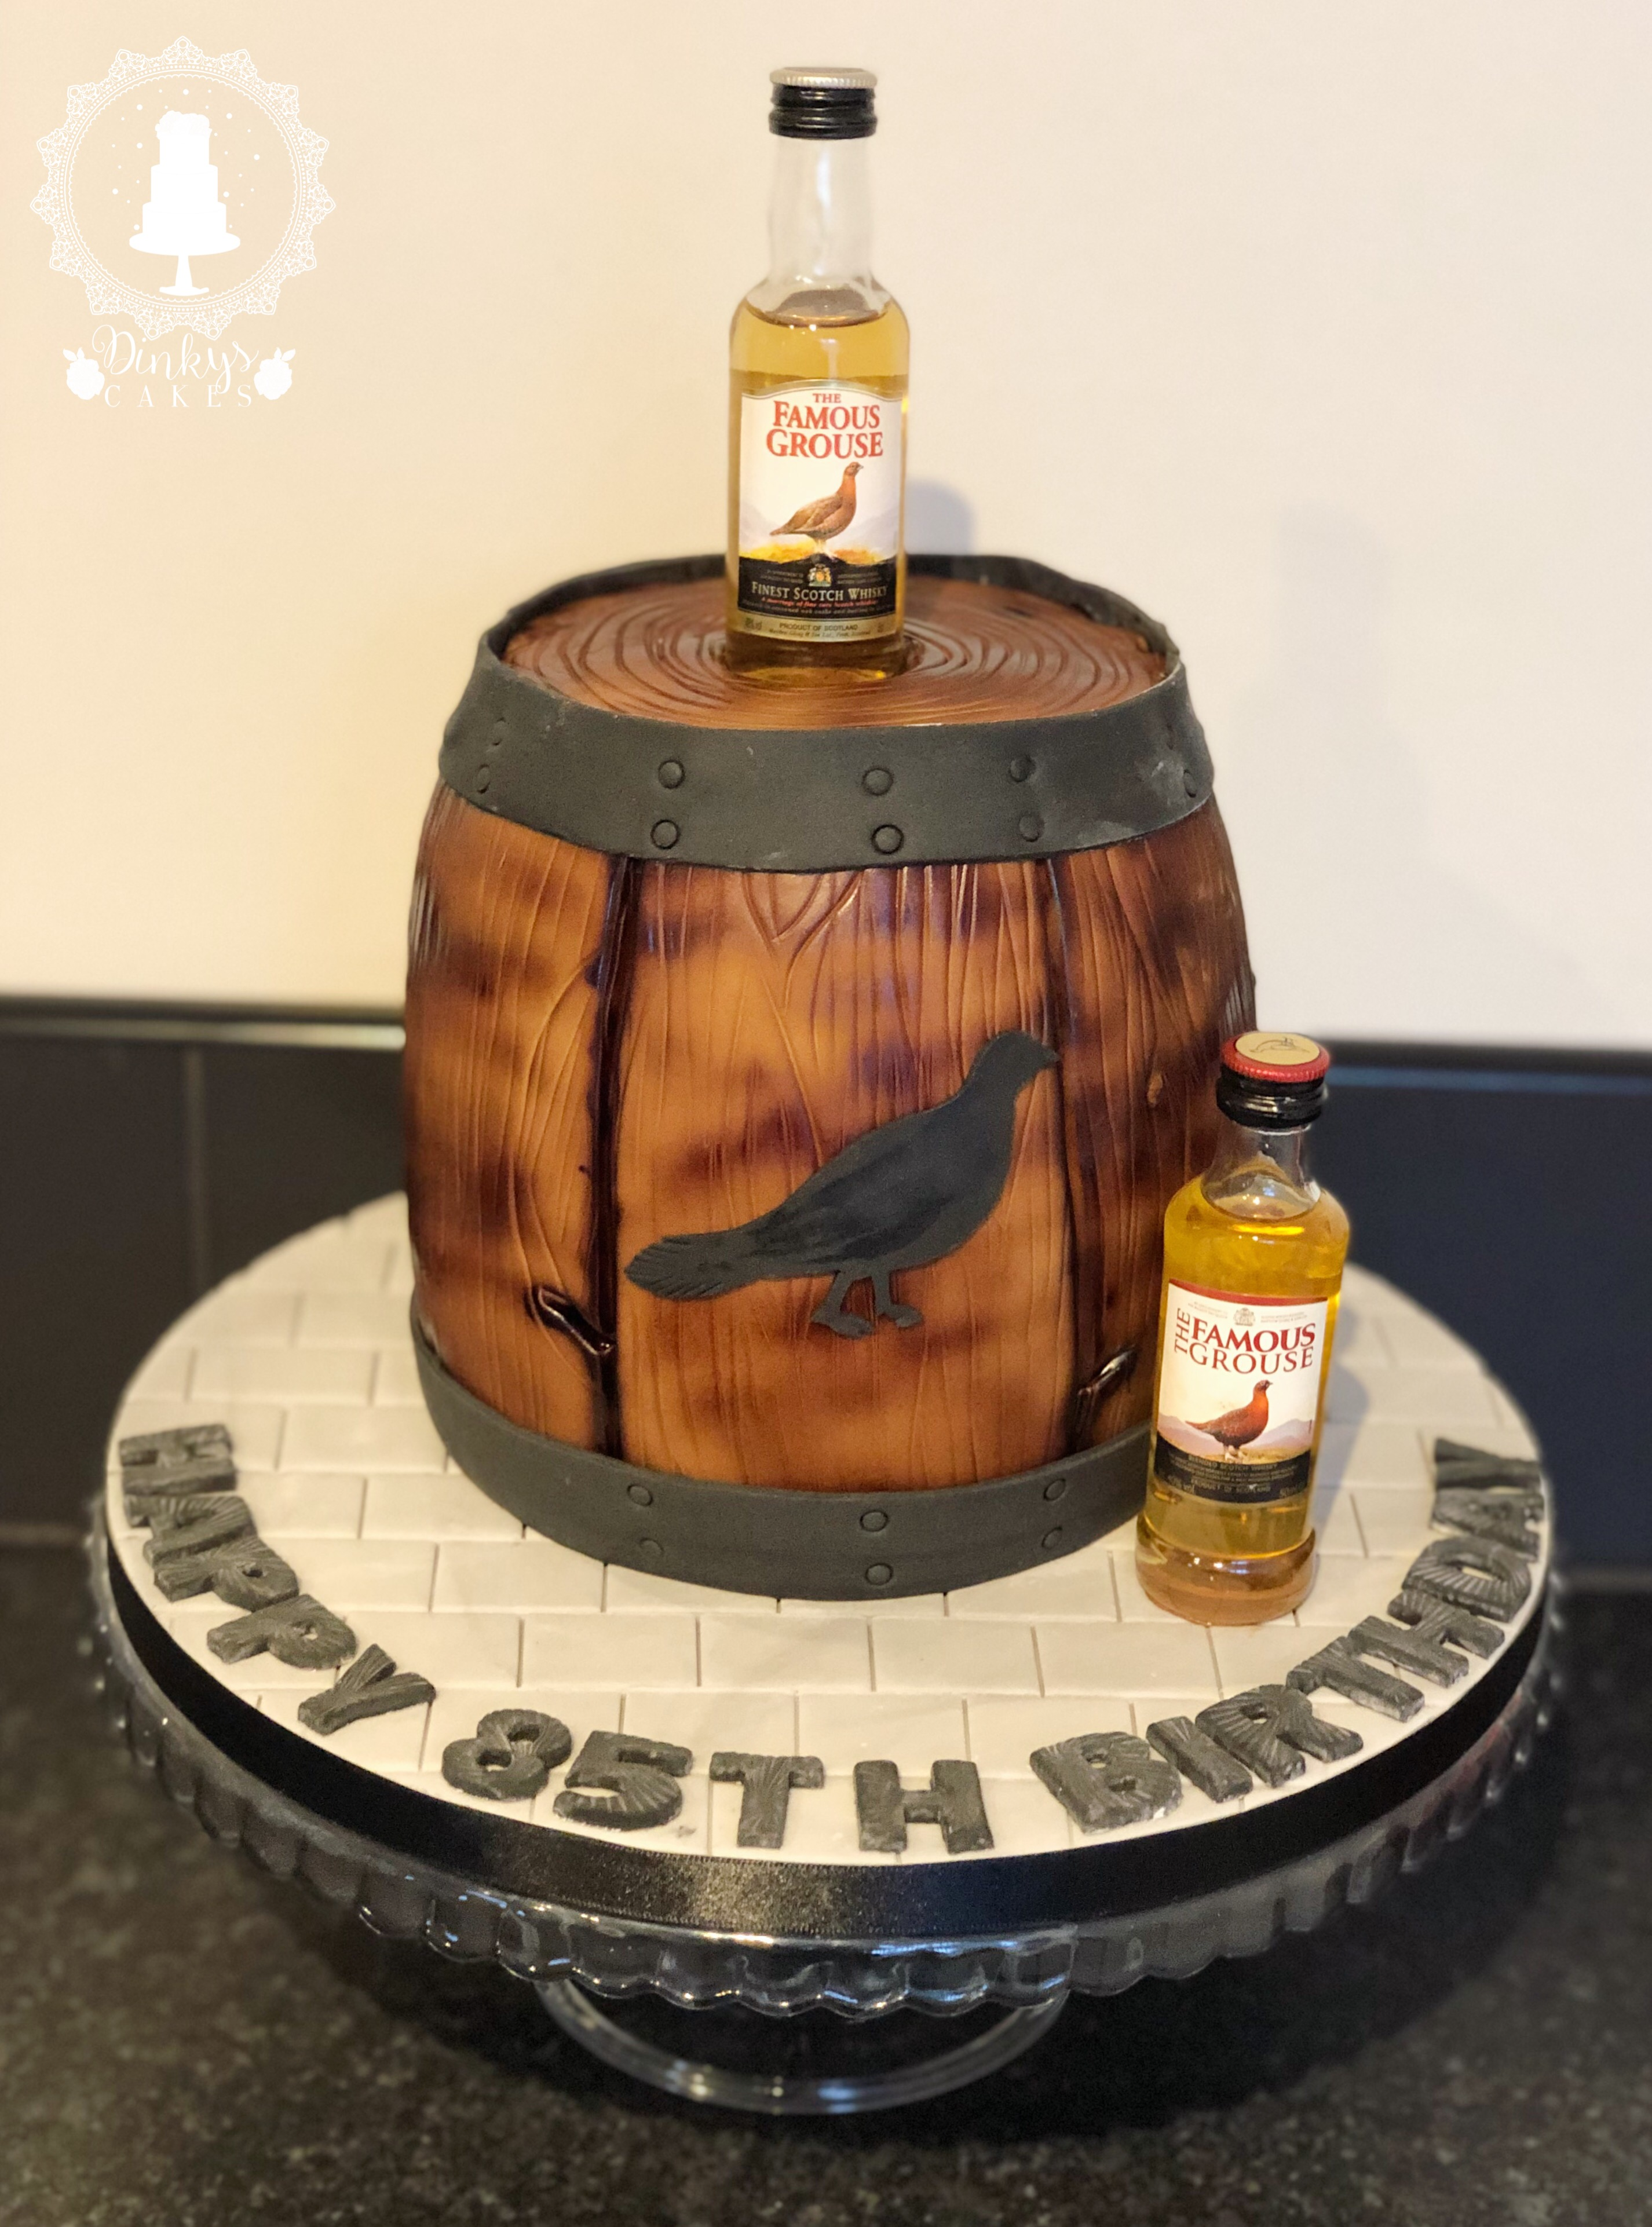 Famous Grouse Cake